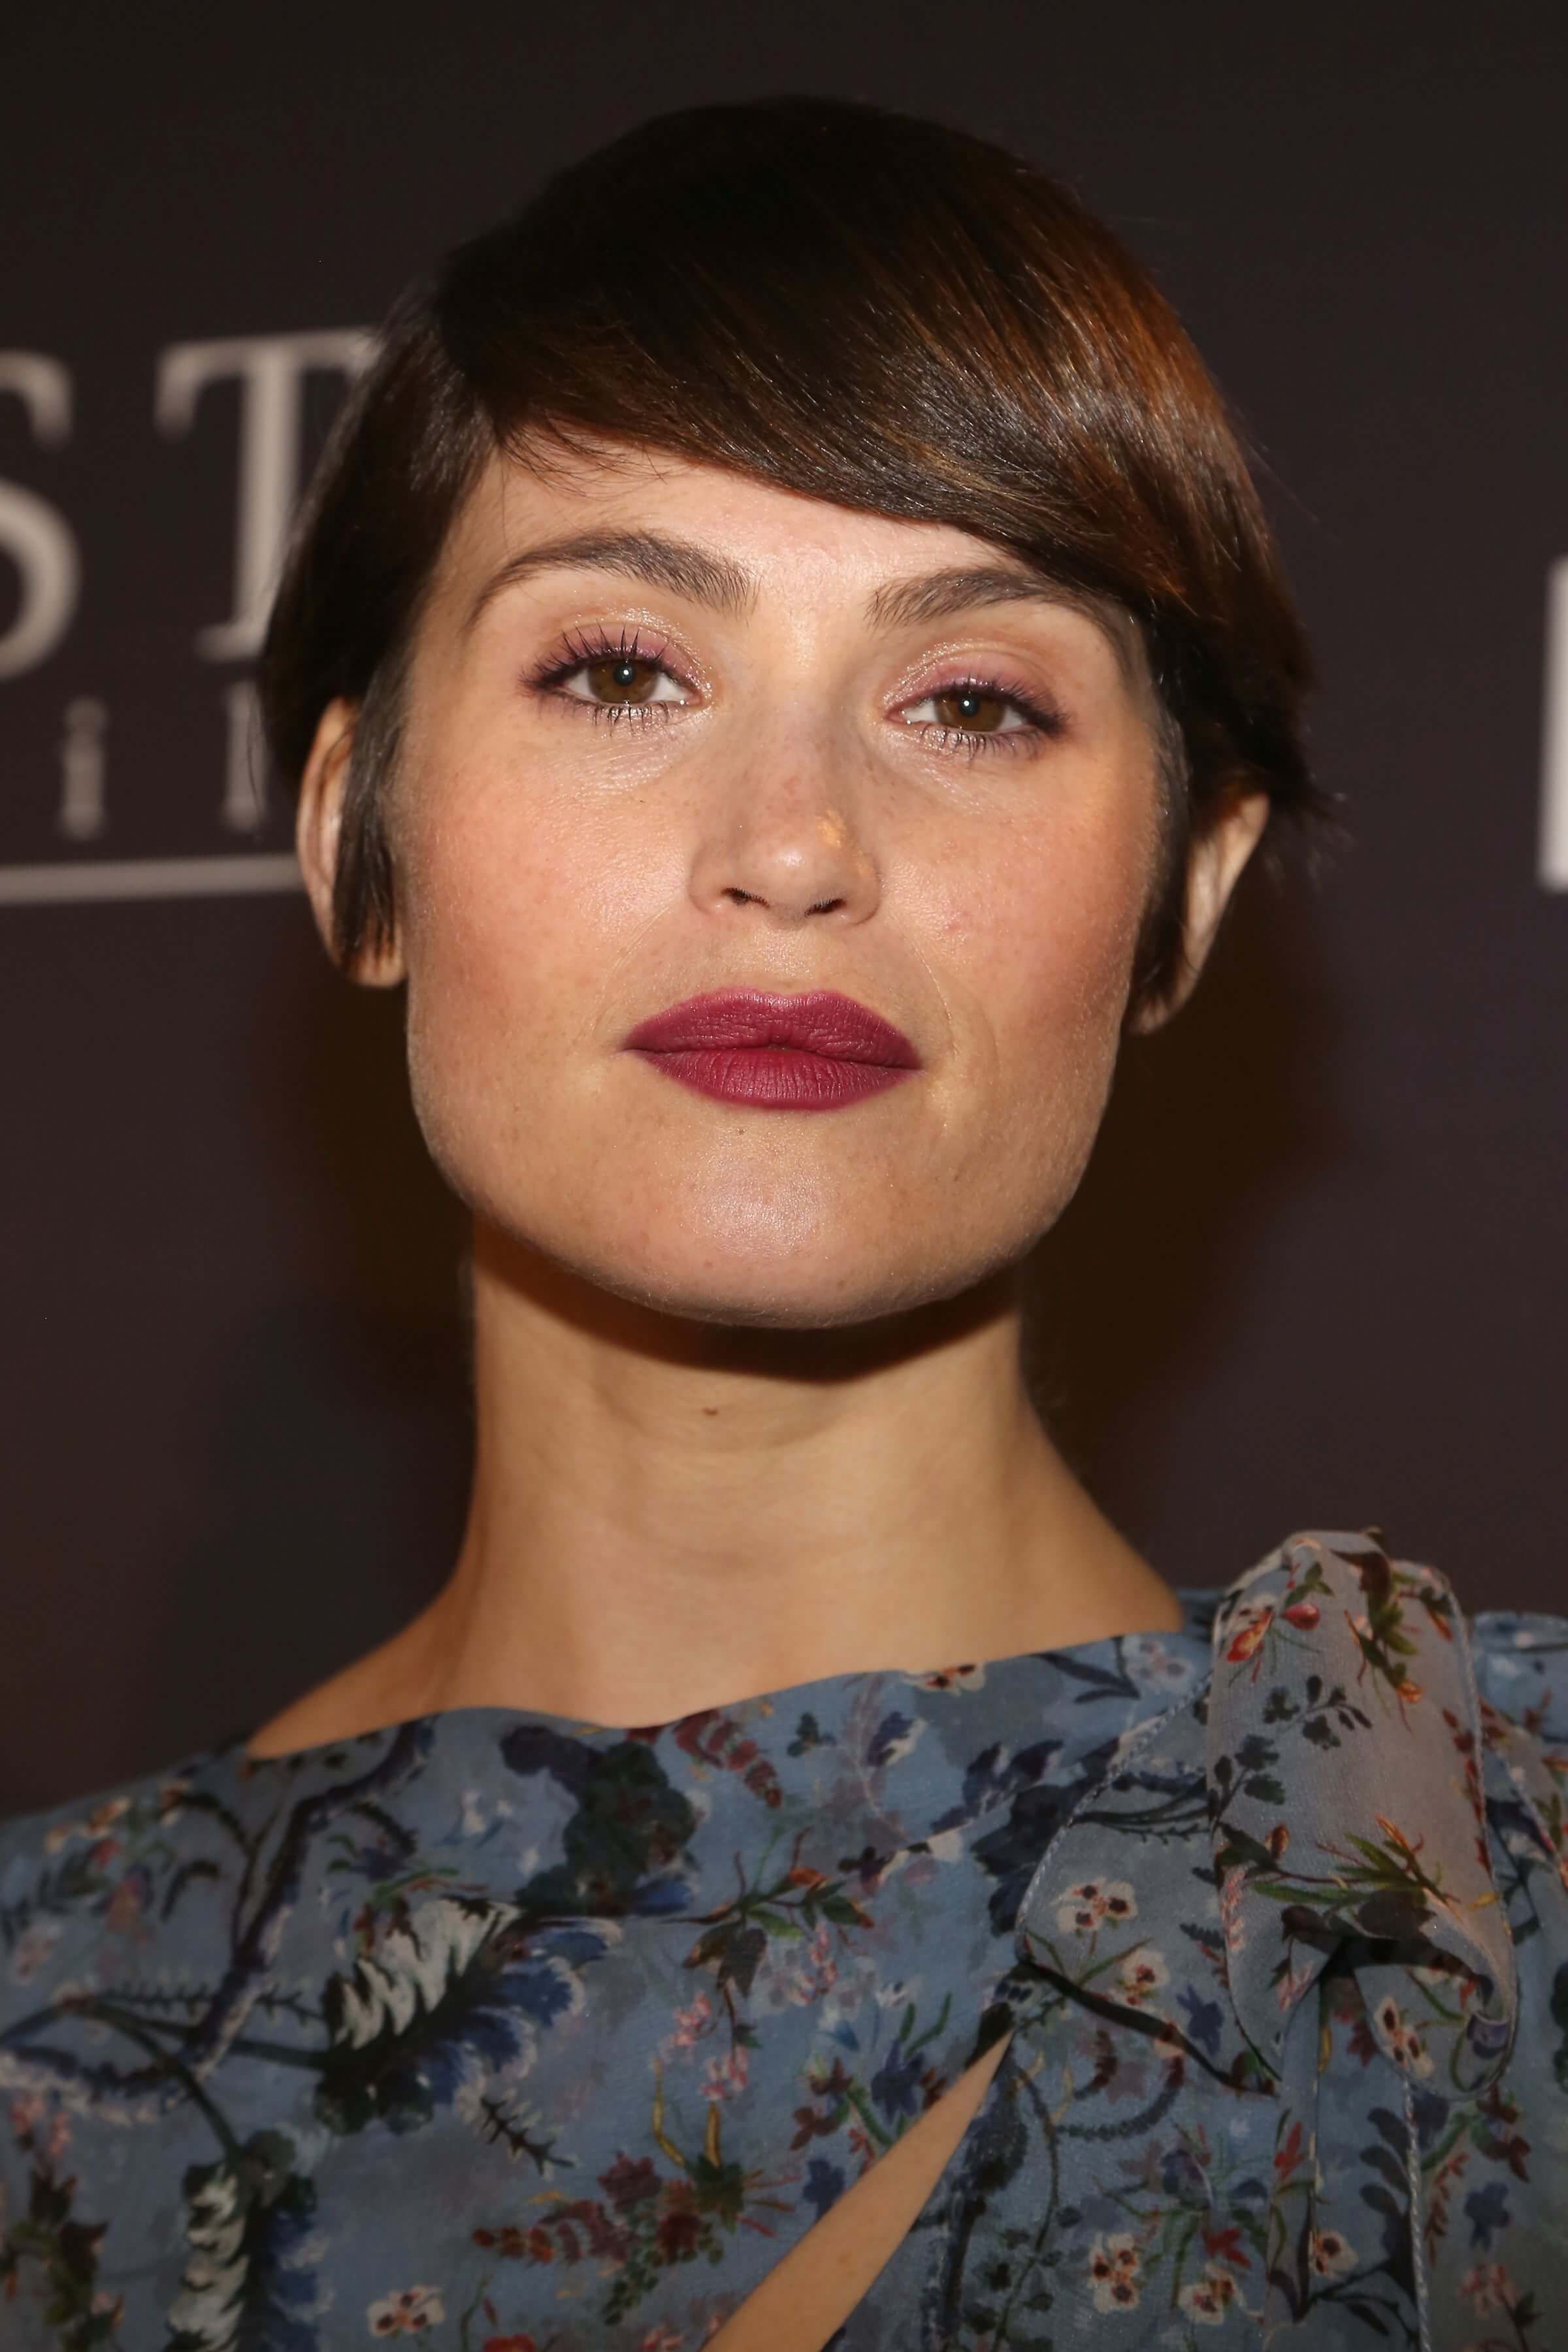 Top 10 Gemma Arterton Hairstyles To Have A Look At Short Hair Styles Cool Short Hairstyles Hair Styles